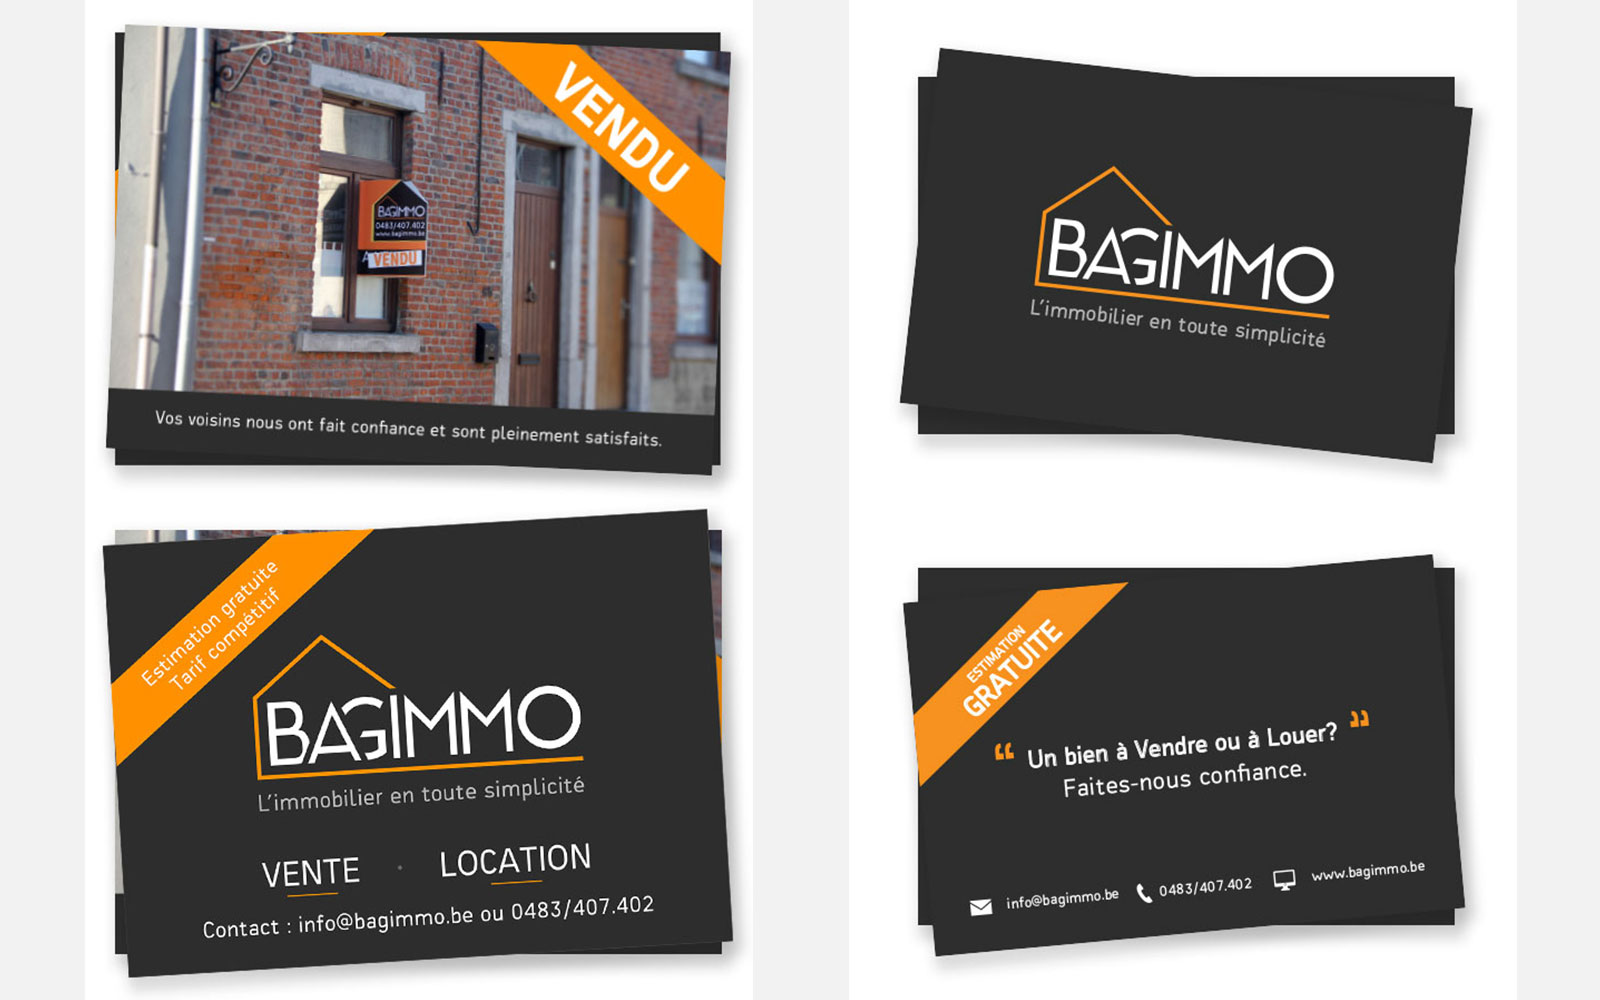 BL-Graphics - Bagimmo - flyers